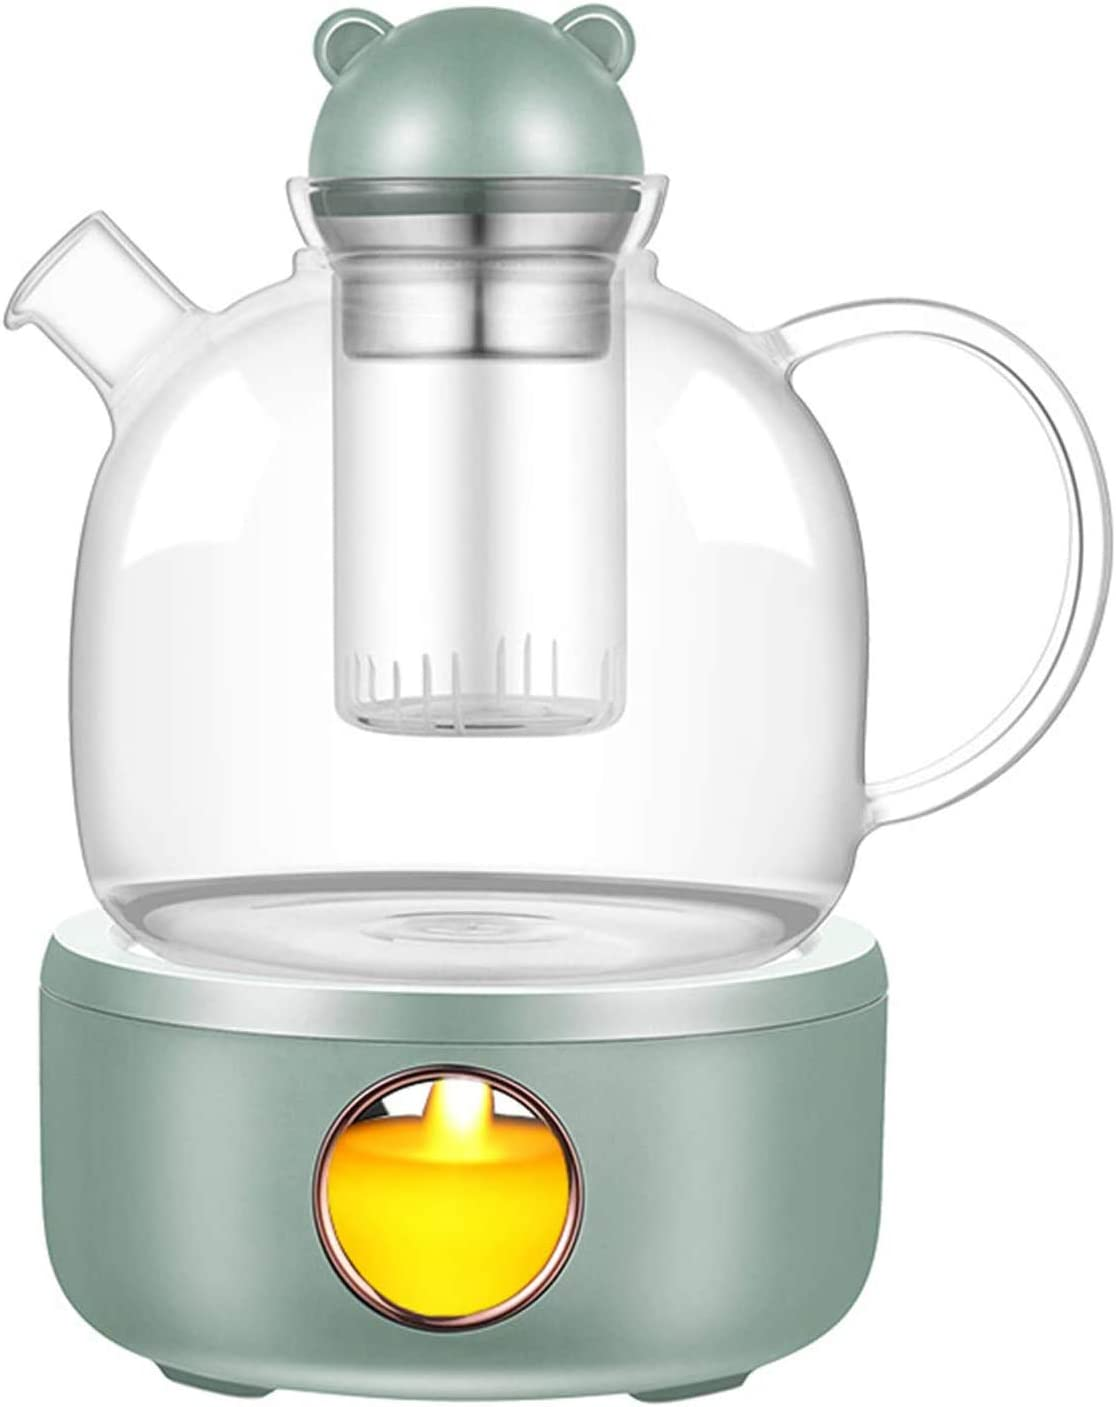 Glass Teapot Coffee Tea Warmer with Glass Infuser & Tea Warmer Set Coffee Moka Milk Warmer Pot Cup Warmer for Desk Simulation Light Candle 23oz/600ml Home Uses and Holiday Gift sets. (GREEN)